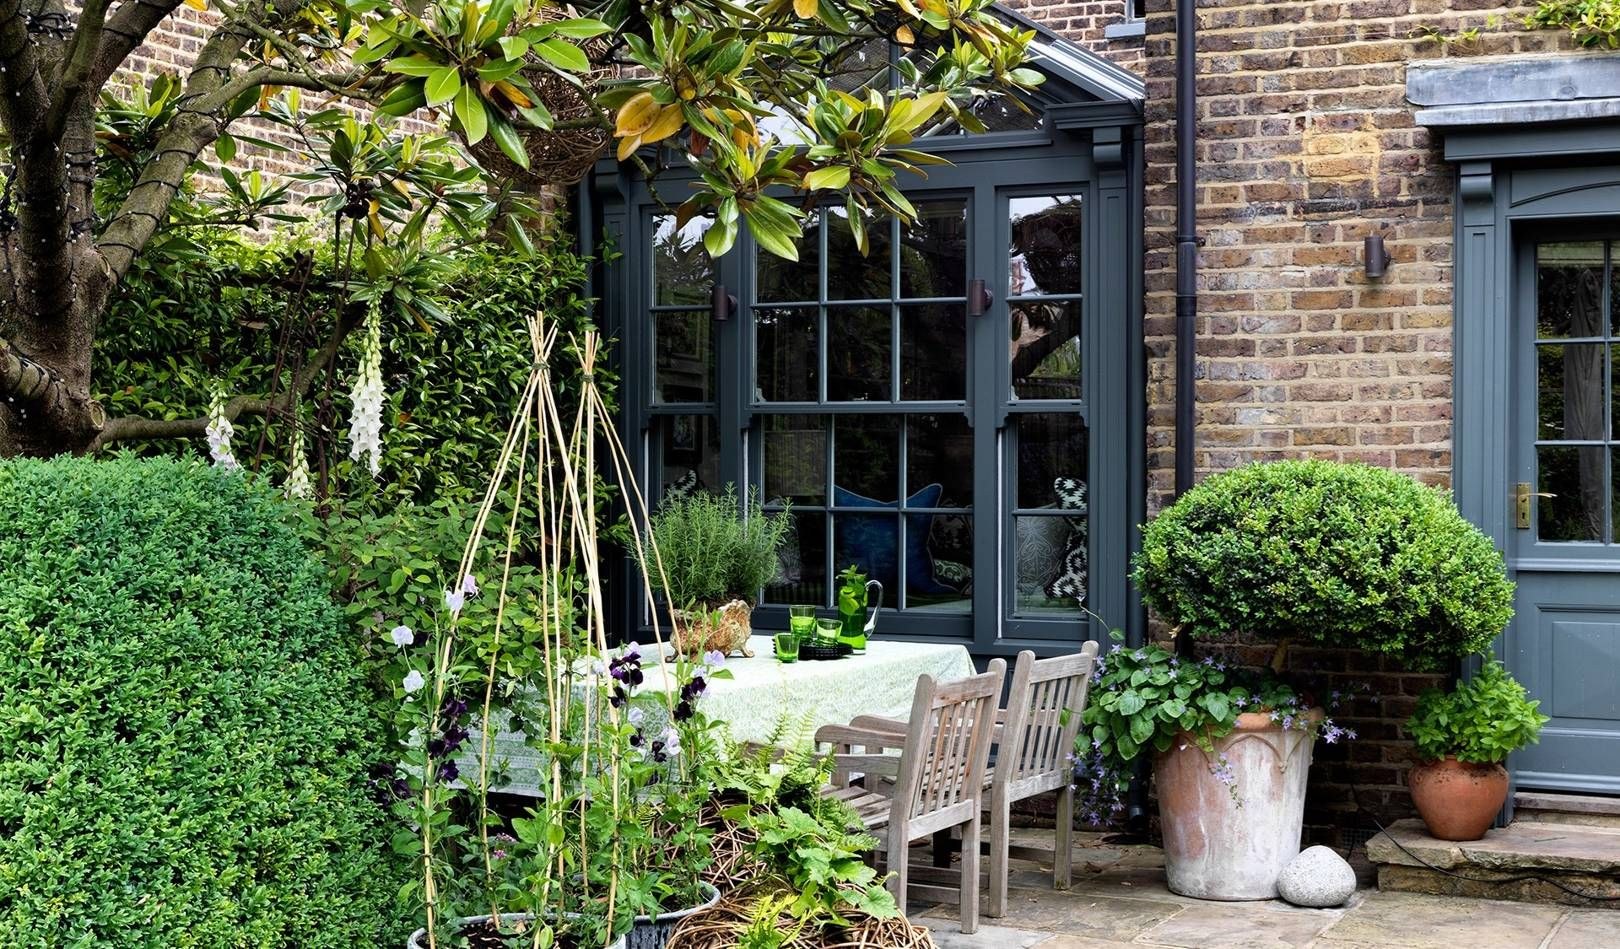 Garden designer Butter Wakefield's house is a slice of the country in the city – City garden